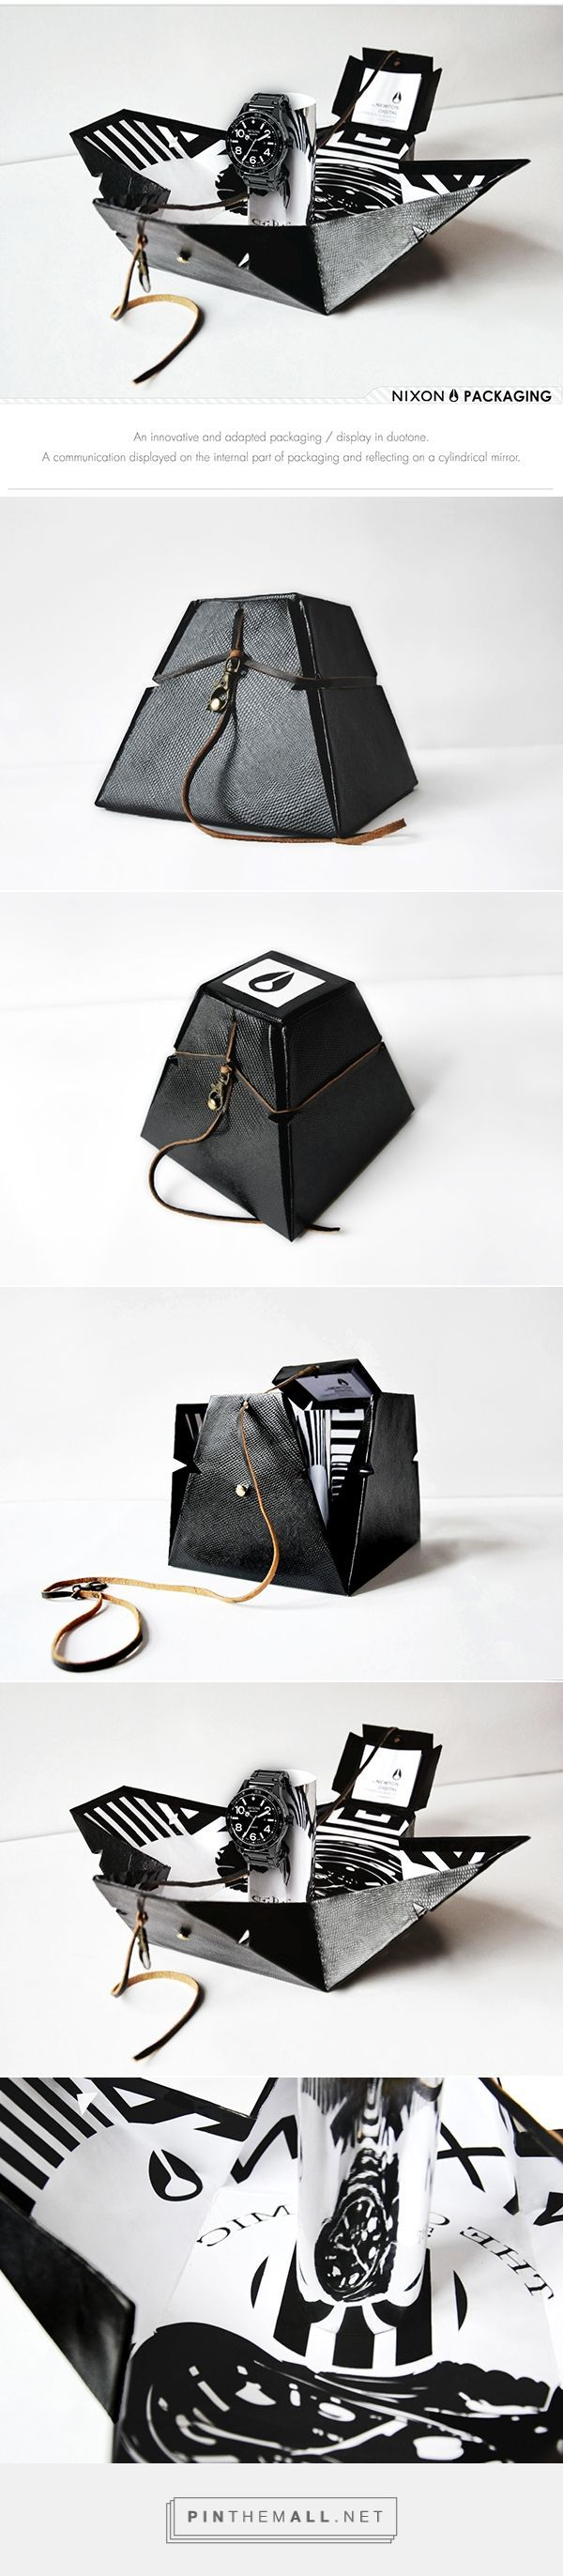 Nixon - Packaging / Display on Behance... - a grouped images picture - Pin Them All